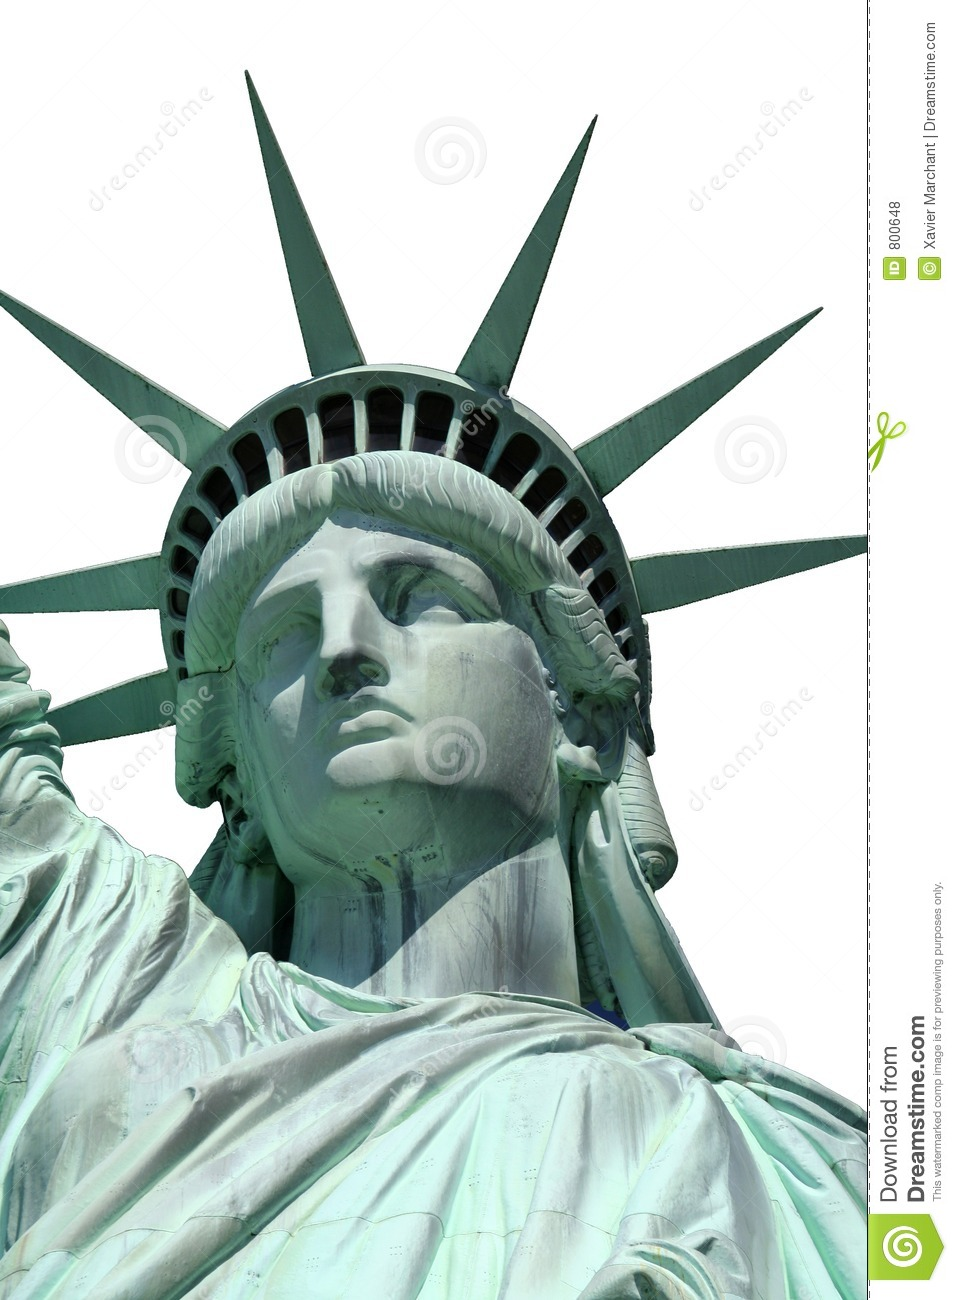 7253610f9b762 Statue Of Liberty Head Isolated Stock Photo - Image of liberty, face ...